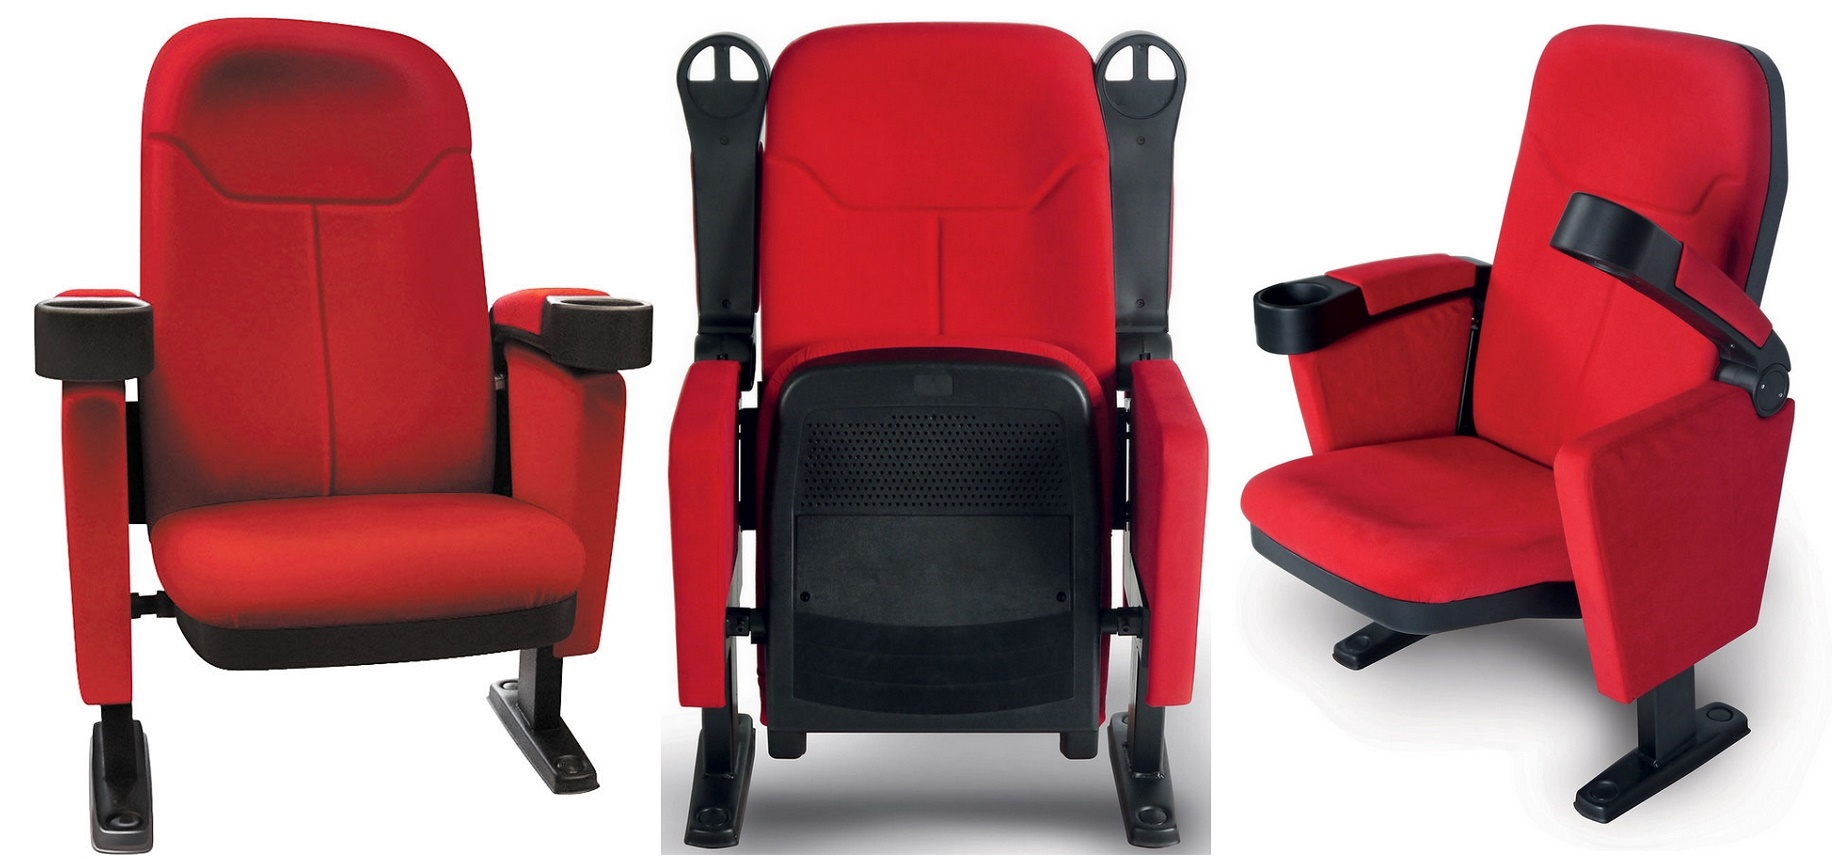 Fauteuil cinéma, tissu rouge, Lumene Hollywood Confort